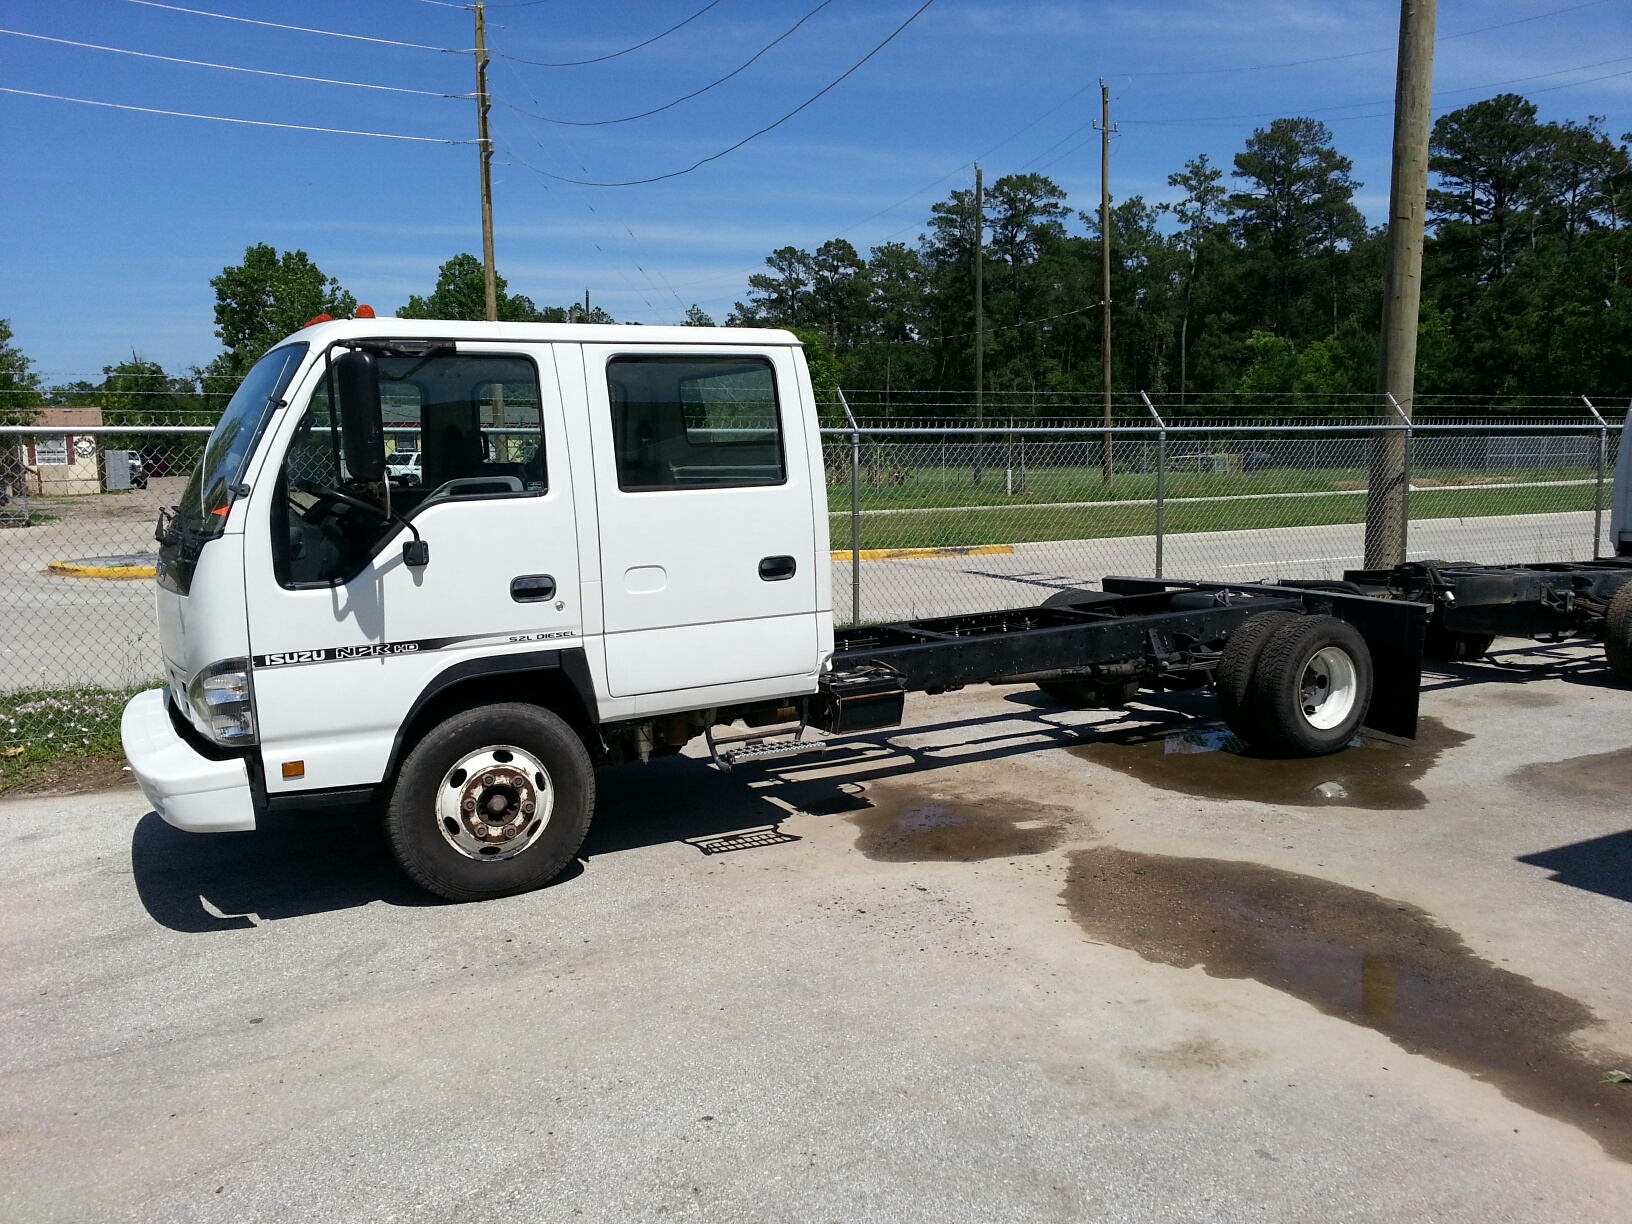 Isuzu Npr For Sale Craigslist >> Texas Truck Fleet - Used Fleet Truck Sales, Medium Duty Trucks, Fleet Trade, Fleet Sales, Used ...